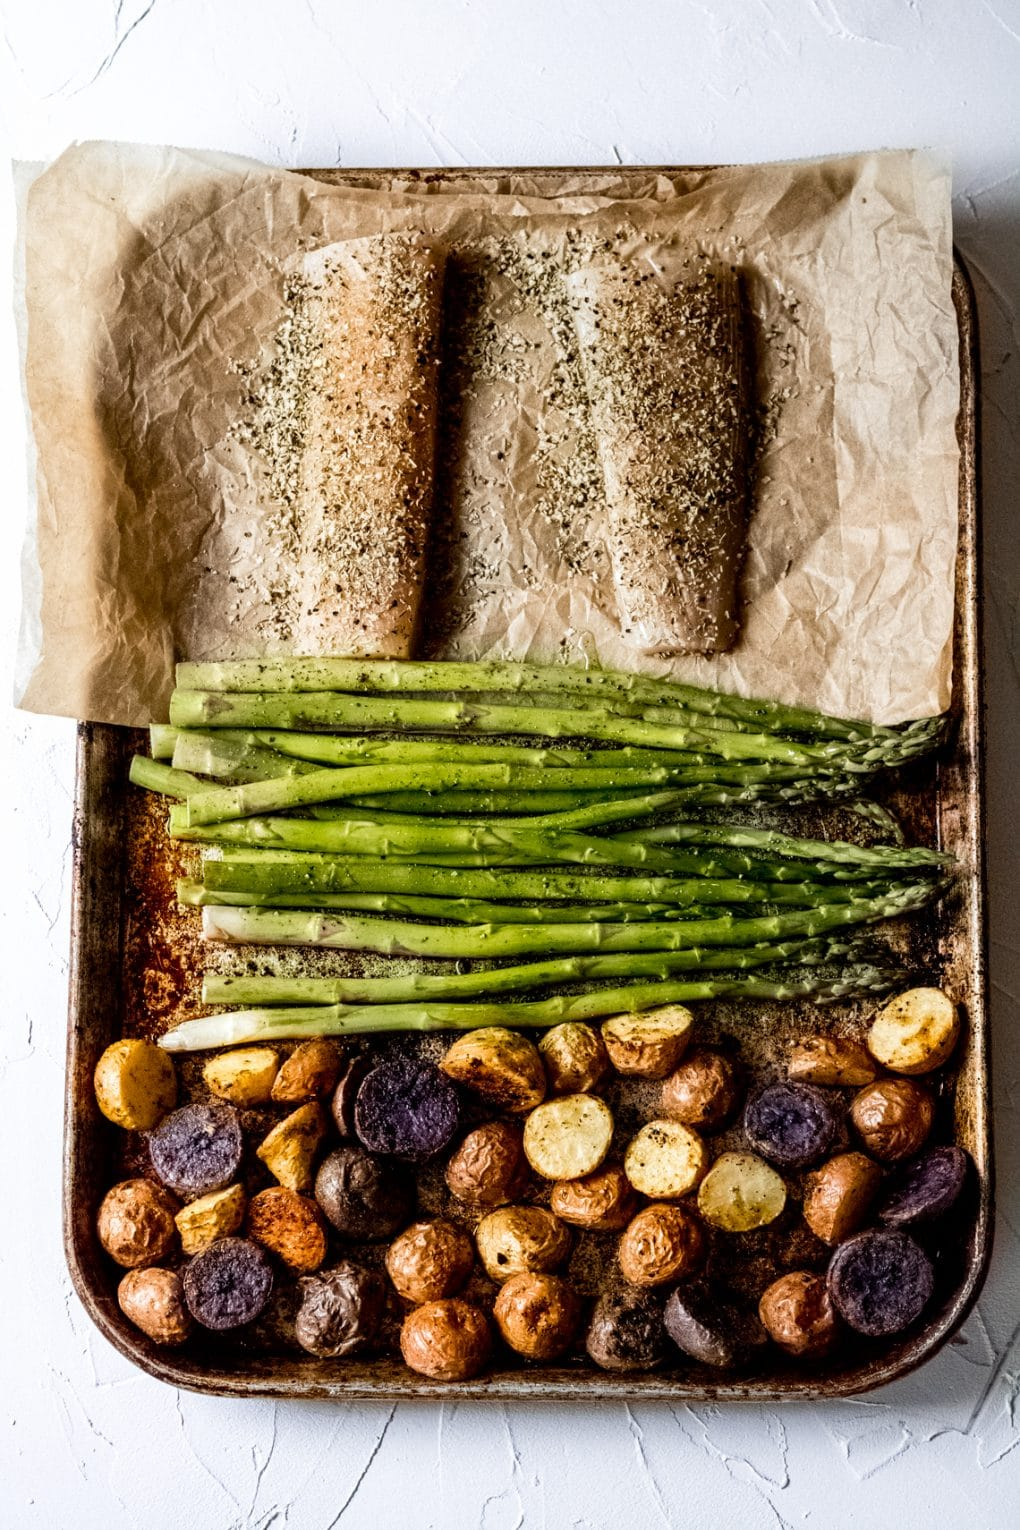 a sheet pan with tiny rainbow potatoes, uncooked asparagus and uncooked Mahi Mahi fillets